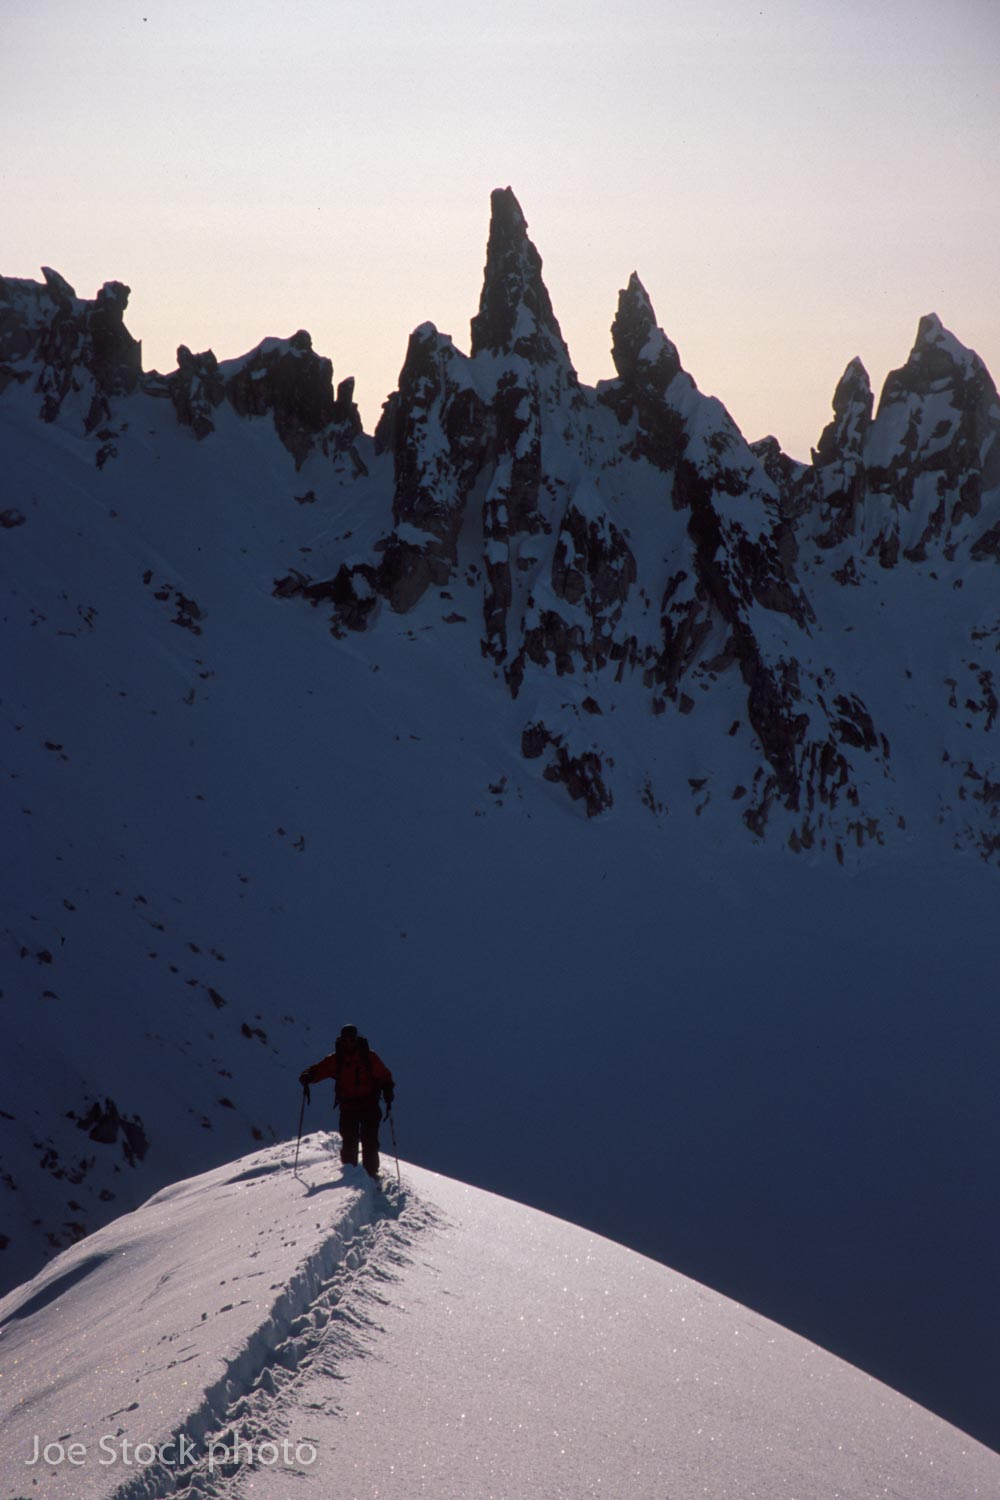 We kept skiing after the Immortal Technique Couloir. Until we had logged 10,000 vertical feet by 10 PM.